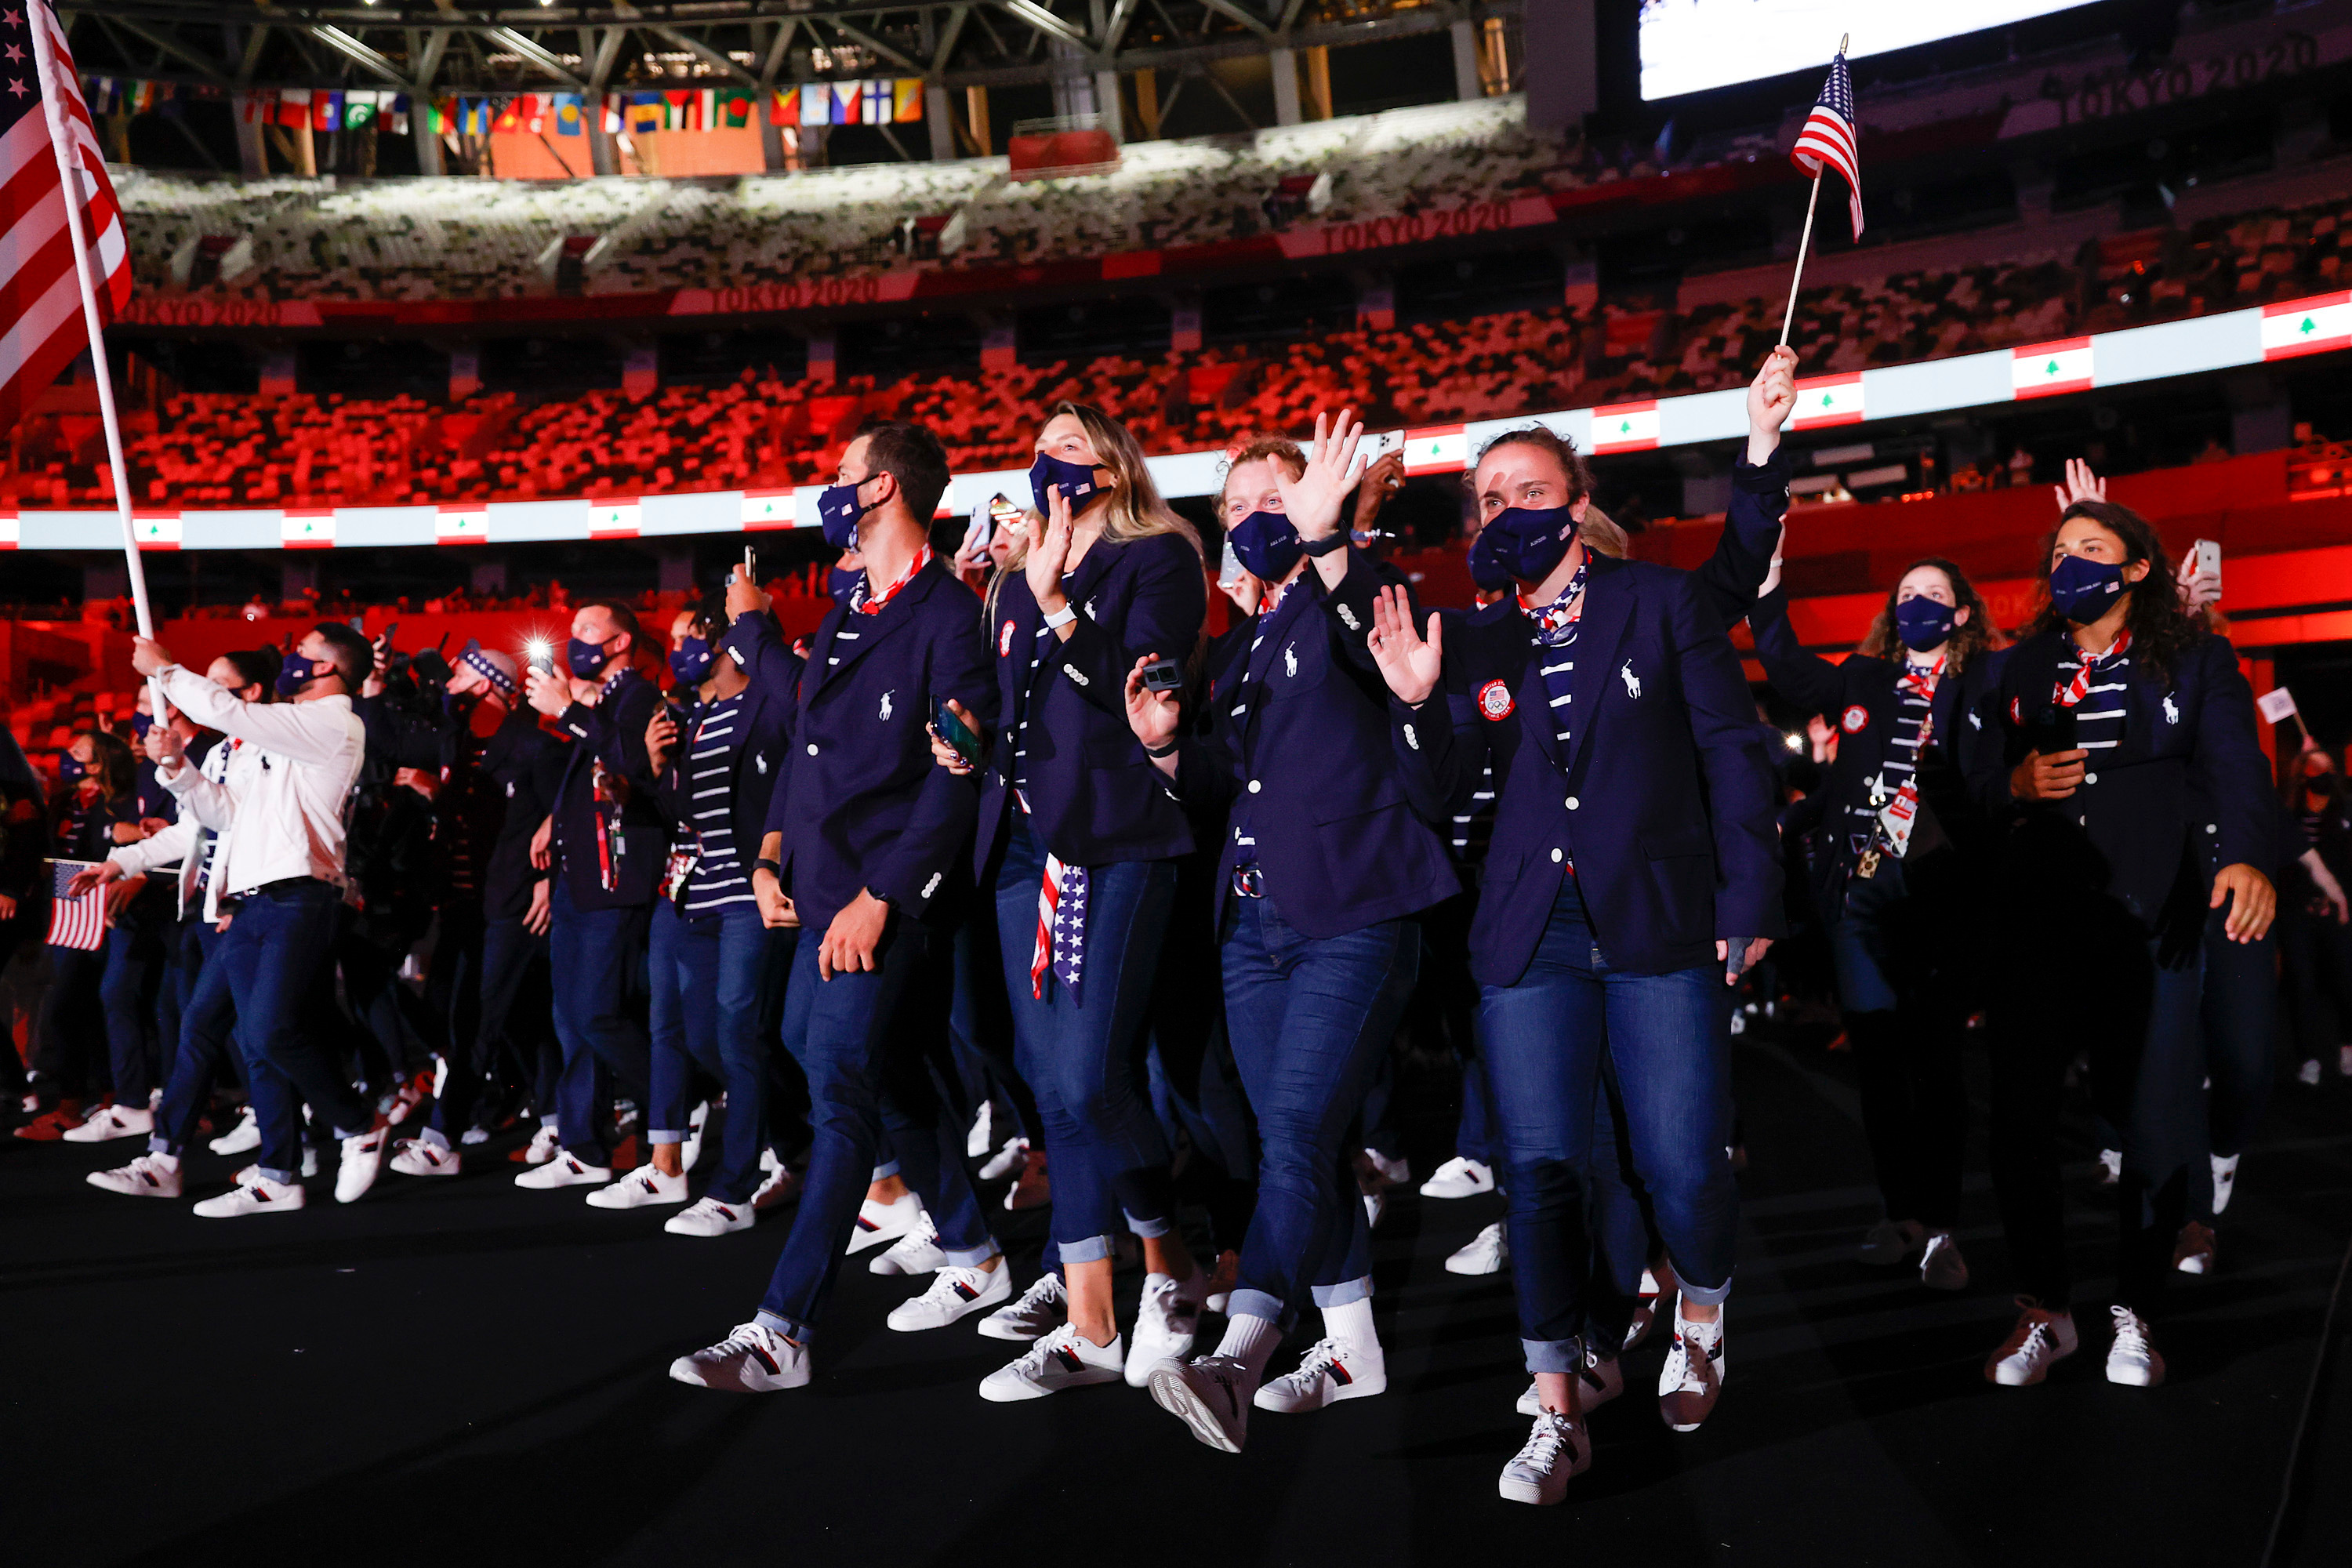 2021 olympic outfits